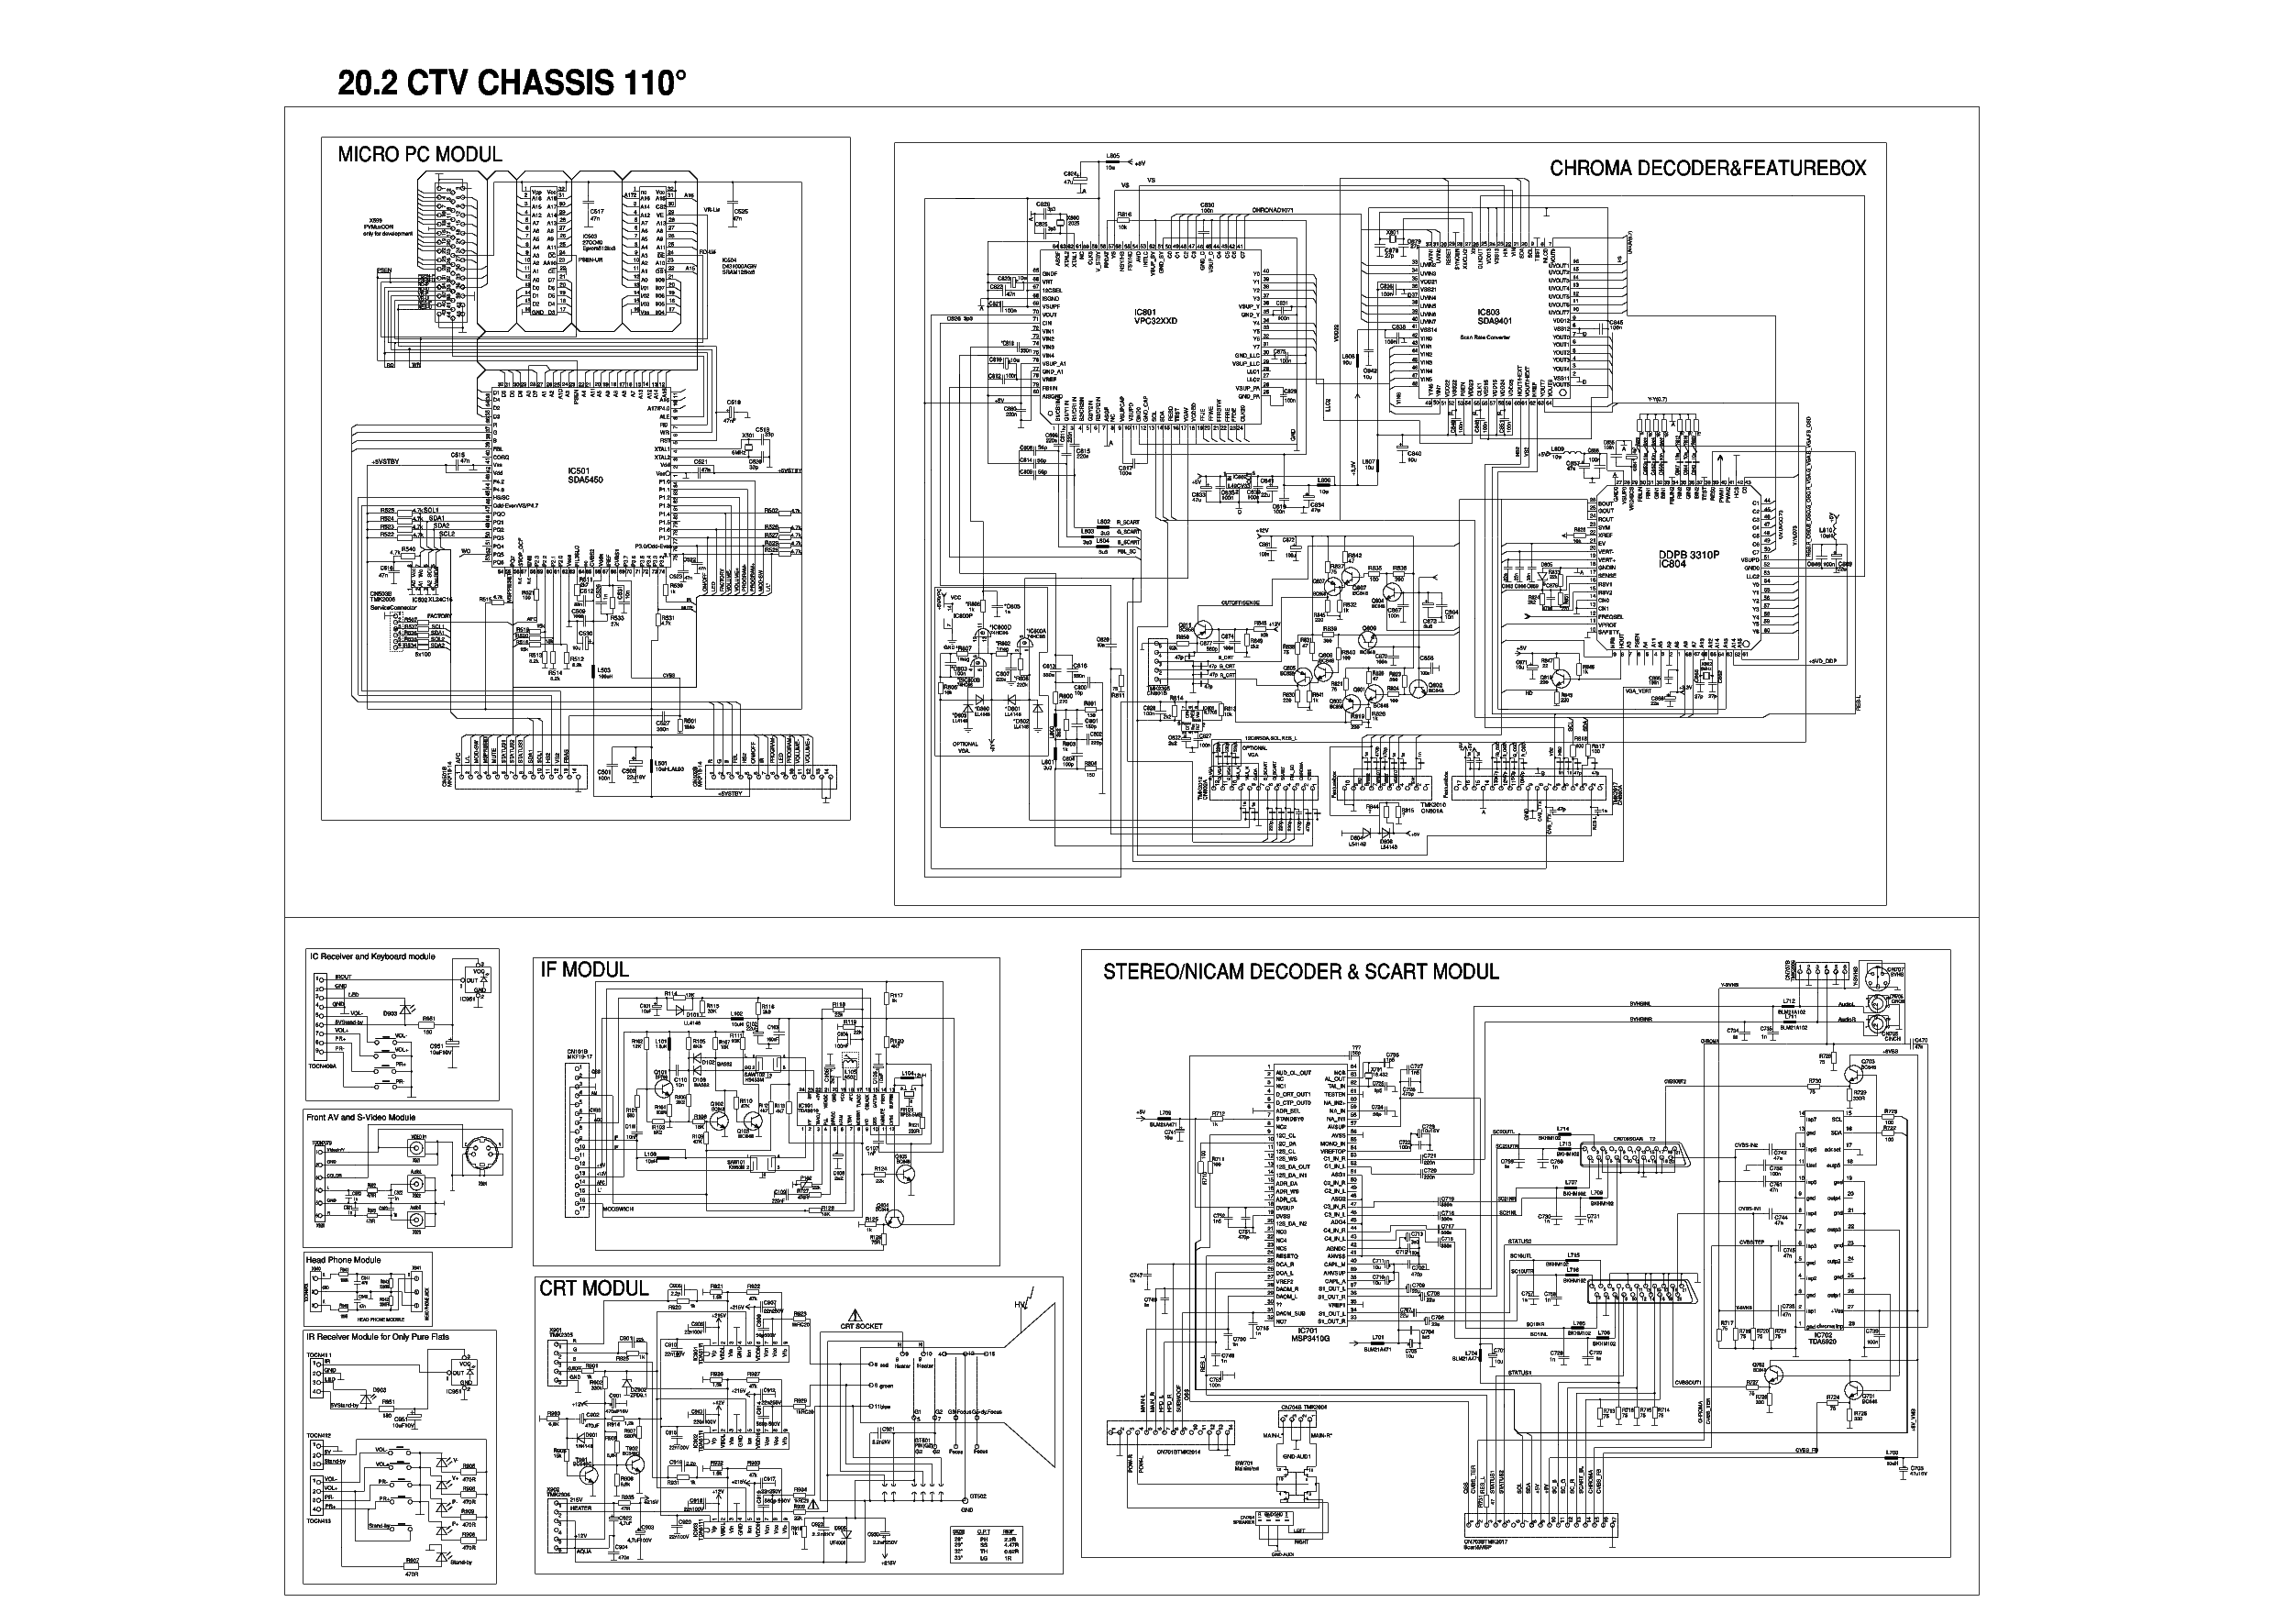 BEKO CHASSIS 20.2 6R1820 SCH Service Manual download